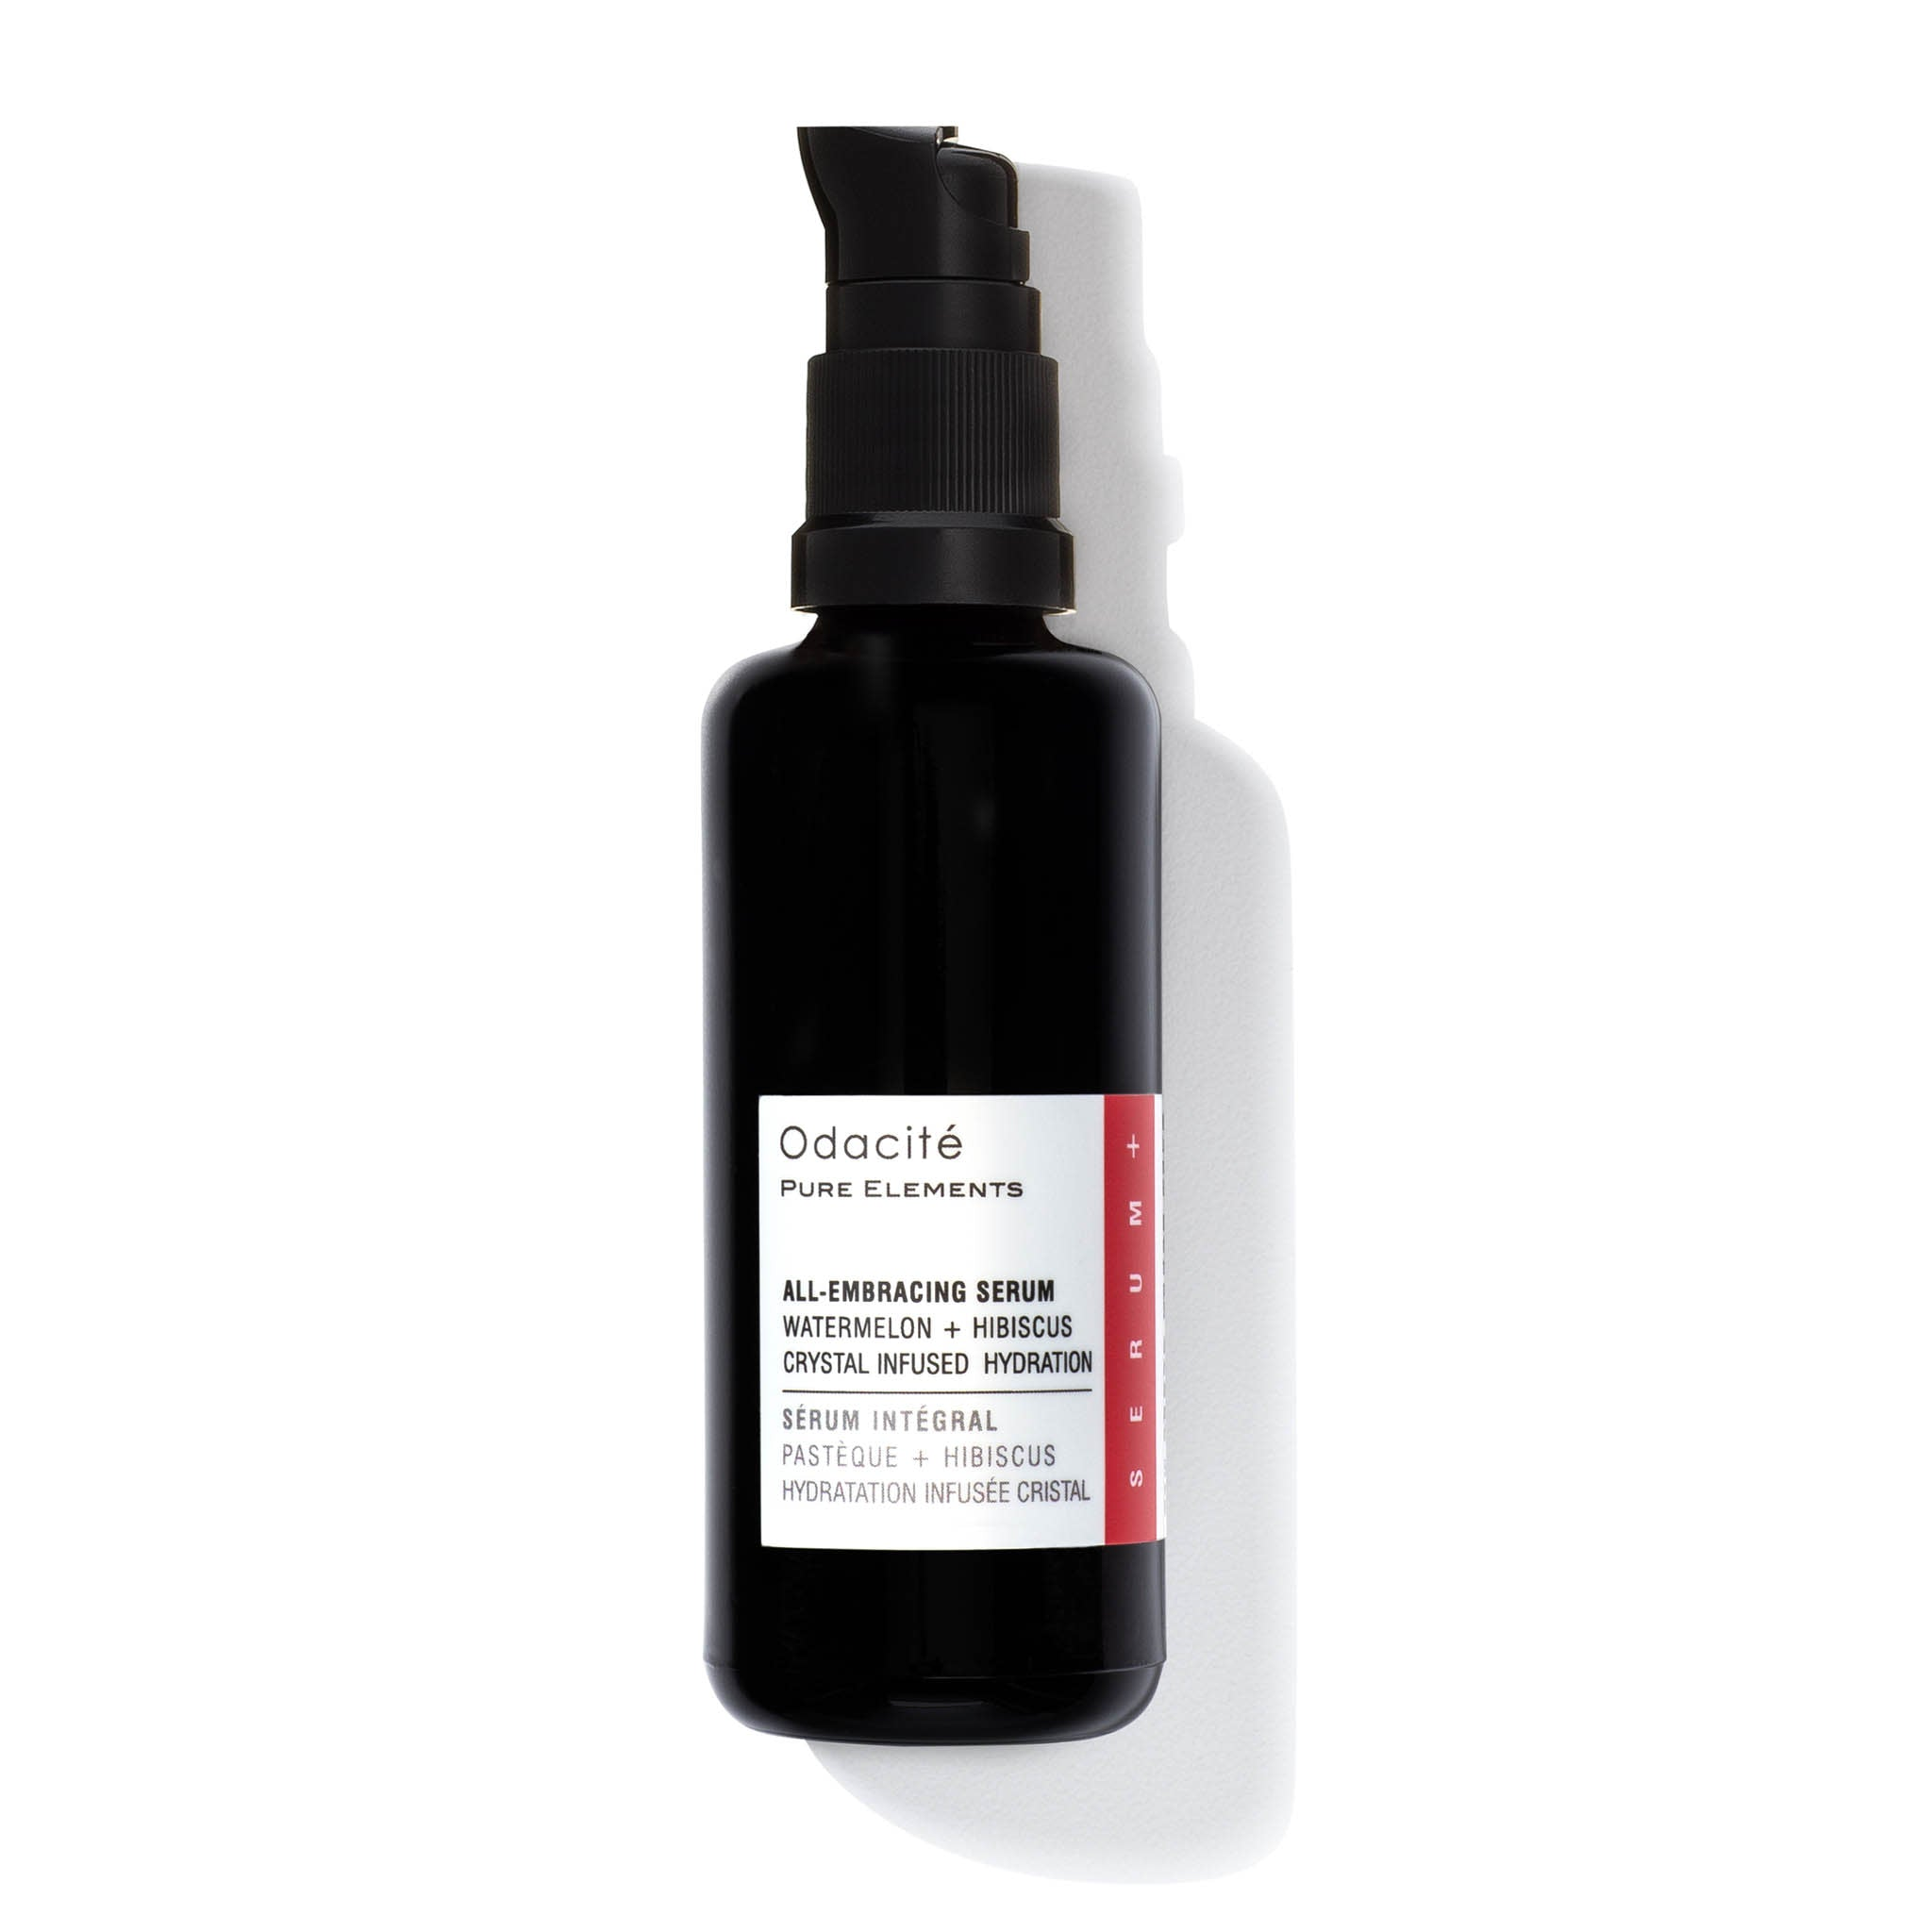 All-Embracing Serum Watermelon + Hibiscus Crystal Infused Hydration